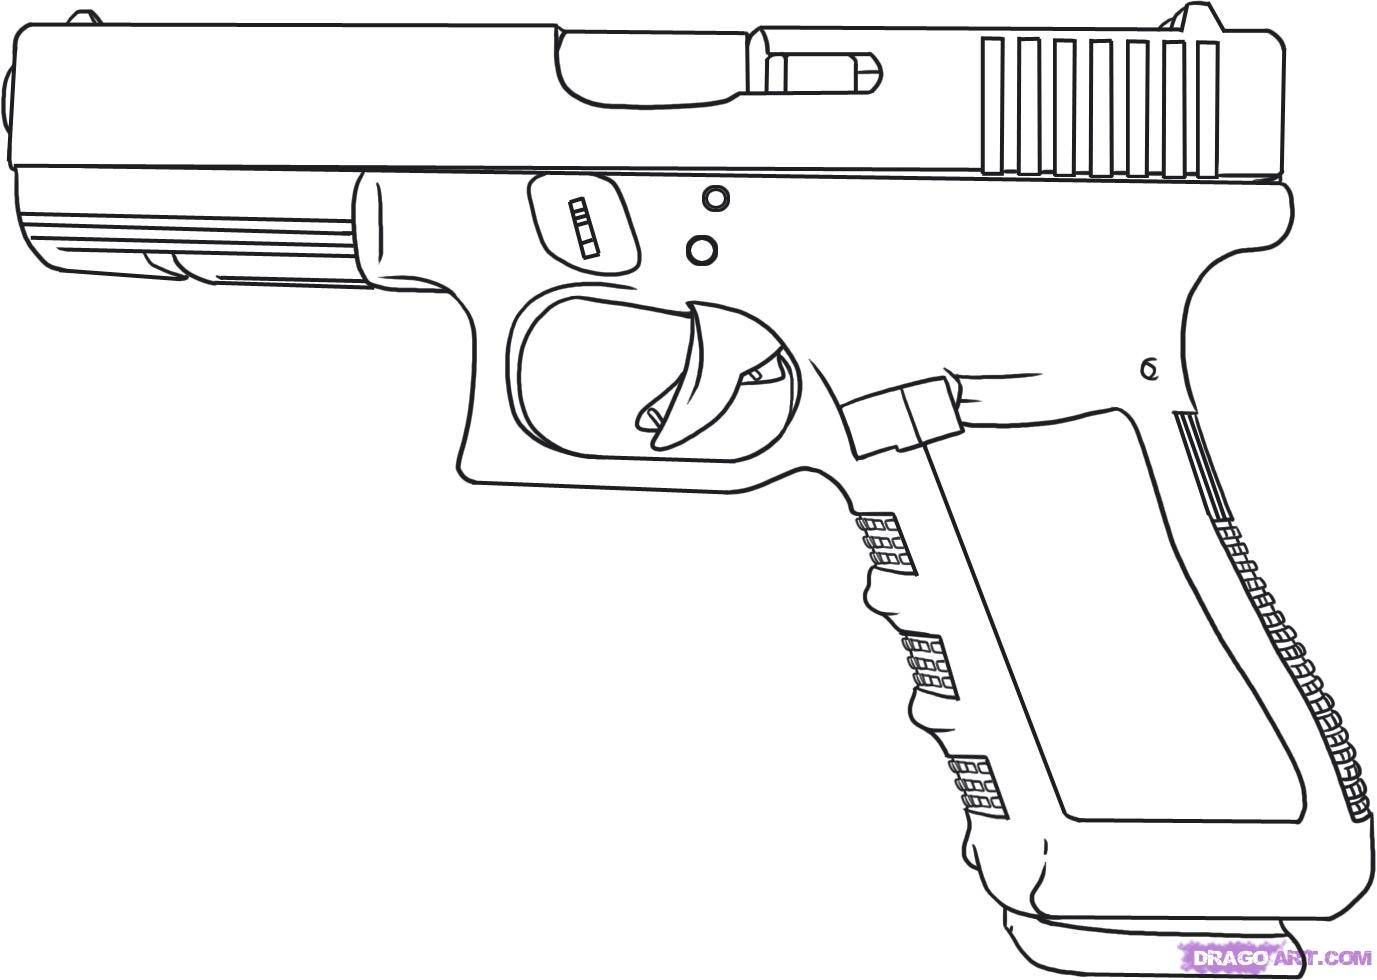 Easy Gun Drawings Picture | To Draw | Pinterest | Drawing Pictures Guns And Drawings